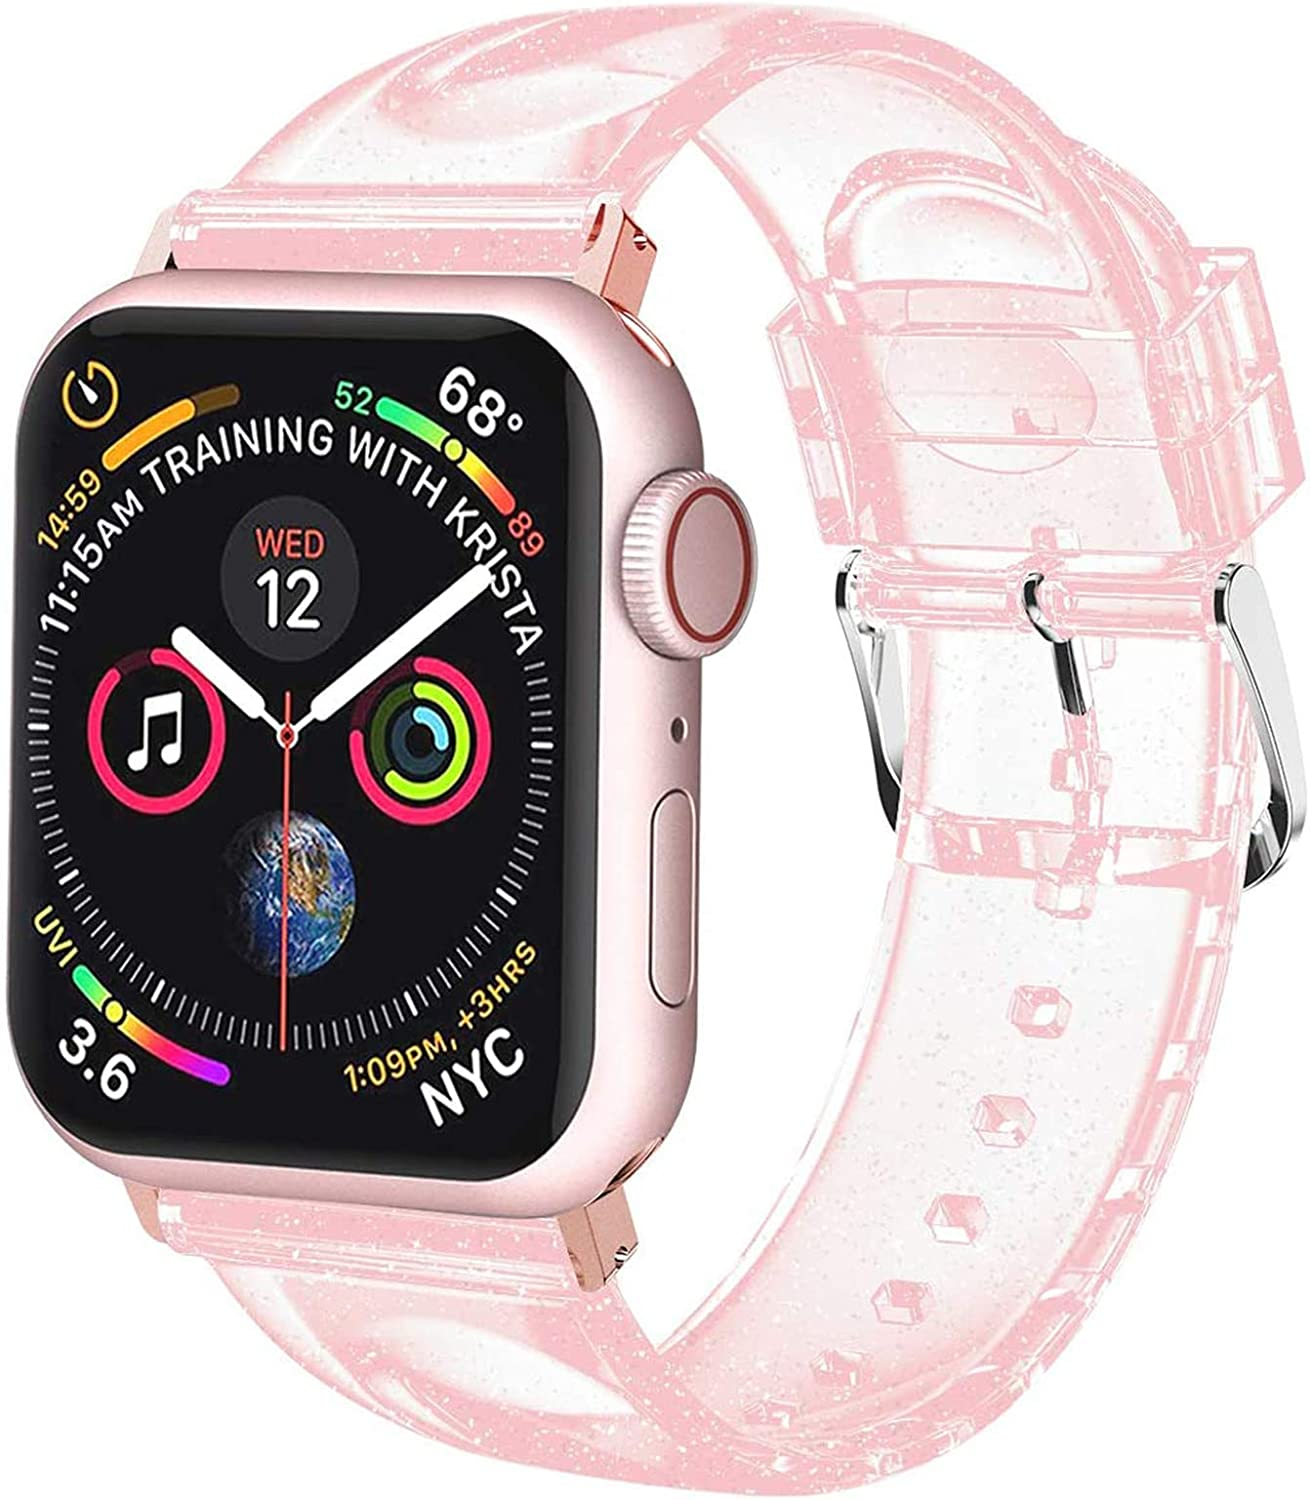 iiteeology Compatible with Apple Watch Band 38mm 40mm, Women Glitter Soft Silicone Sports iWatch Band Strap for Apple Watch Series 6/5/4/3/2/1/SE (38mm 40mm Pink/Silver Band + Rose Gold Connector)